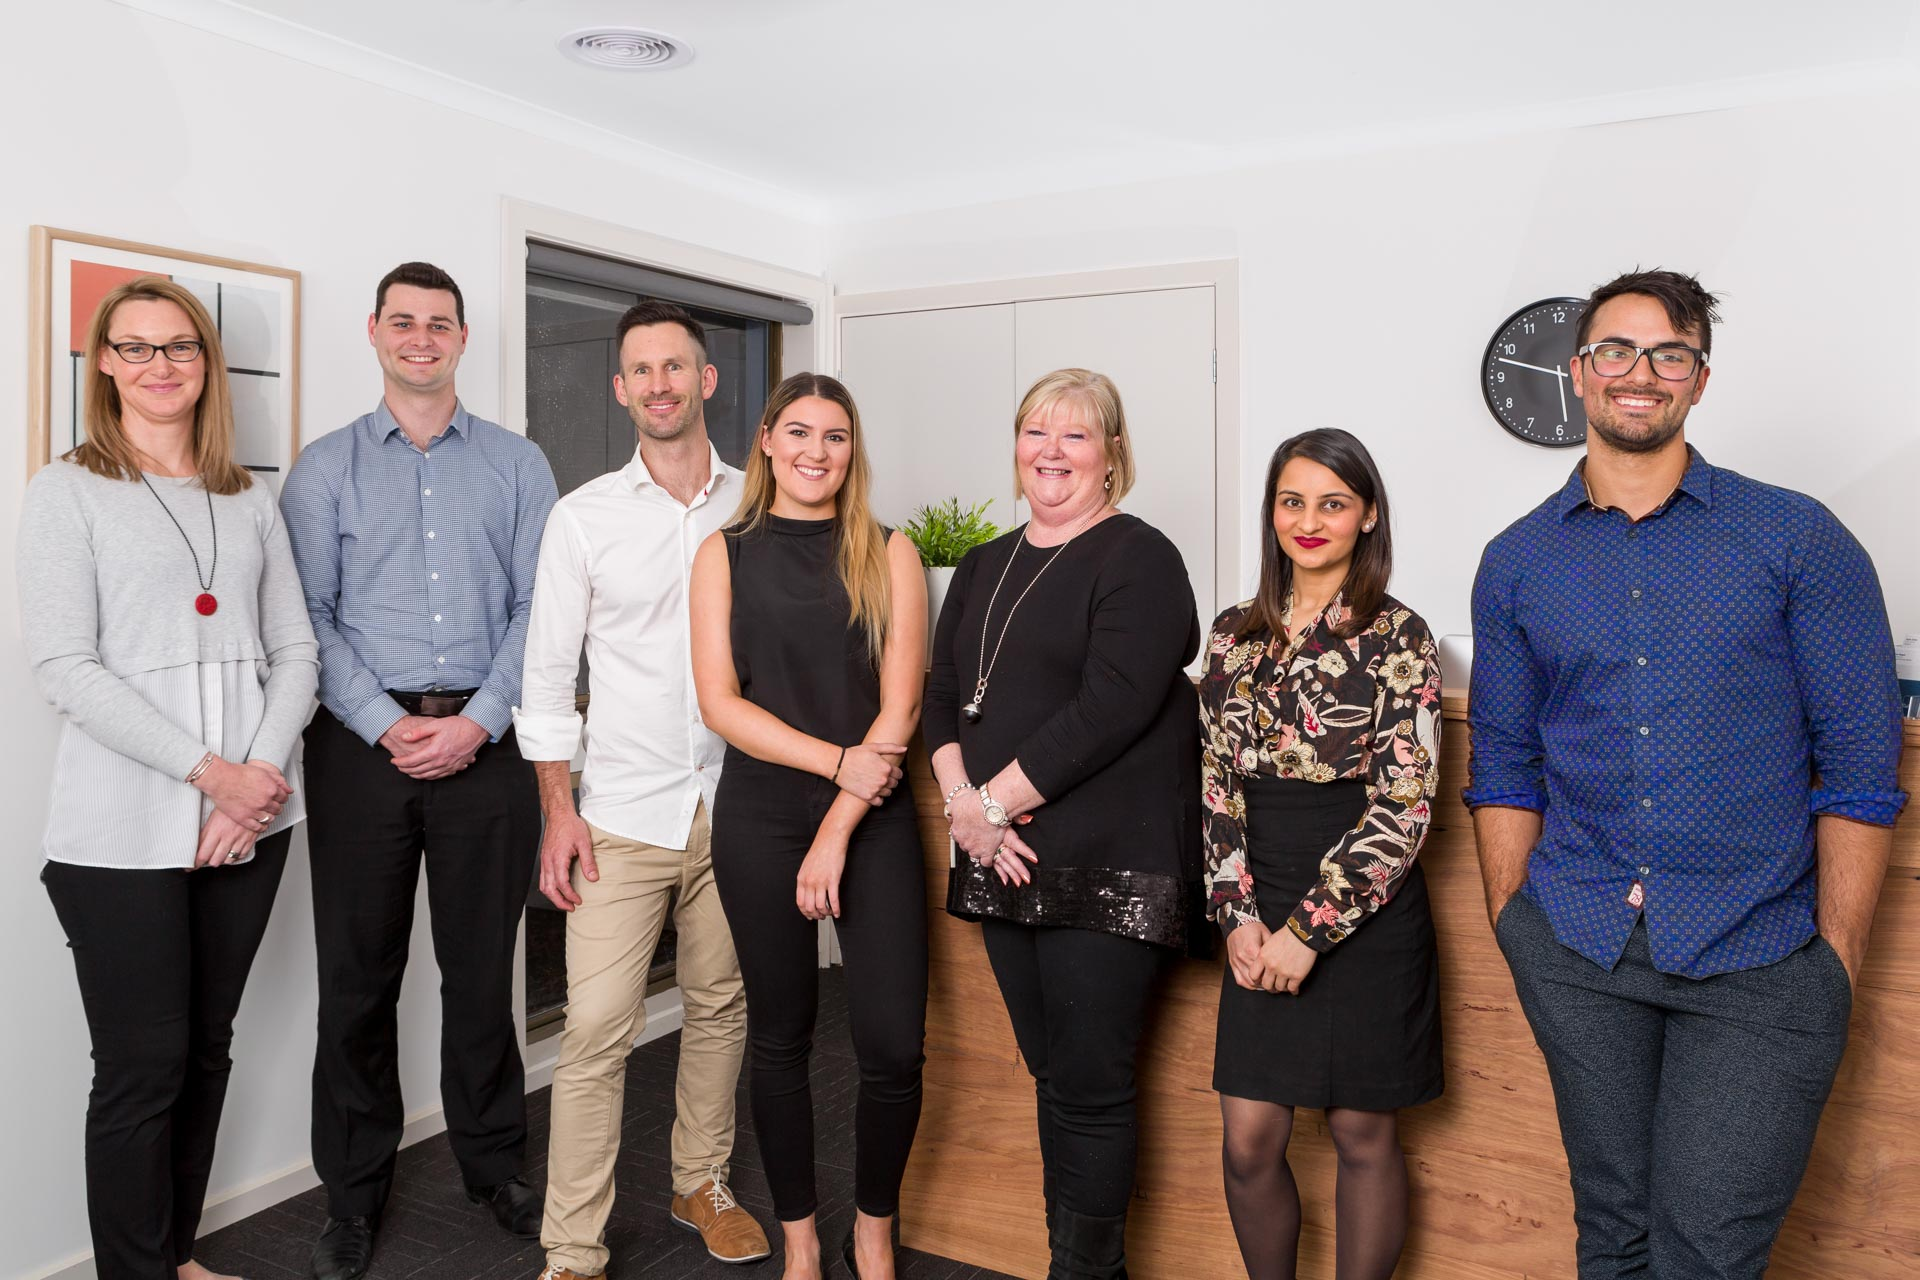 group workplace photo of staff and director all standing in reception area smiling